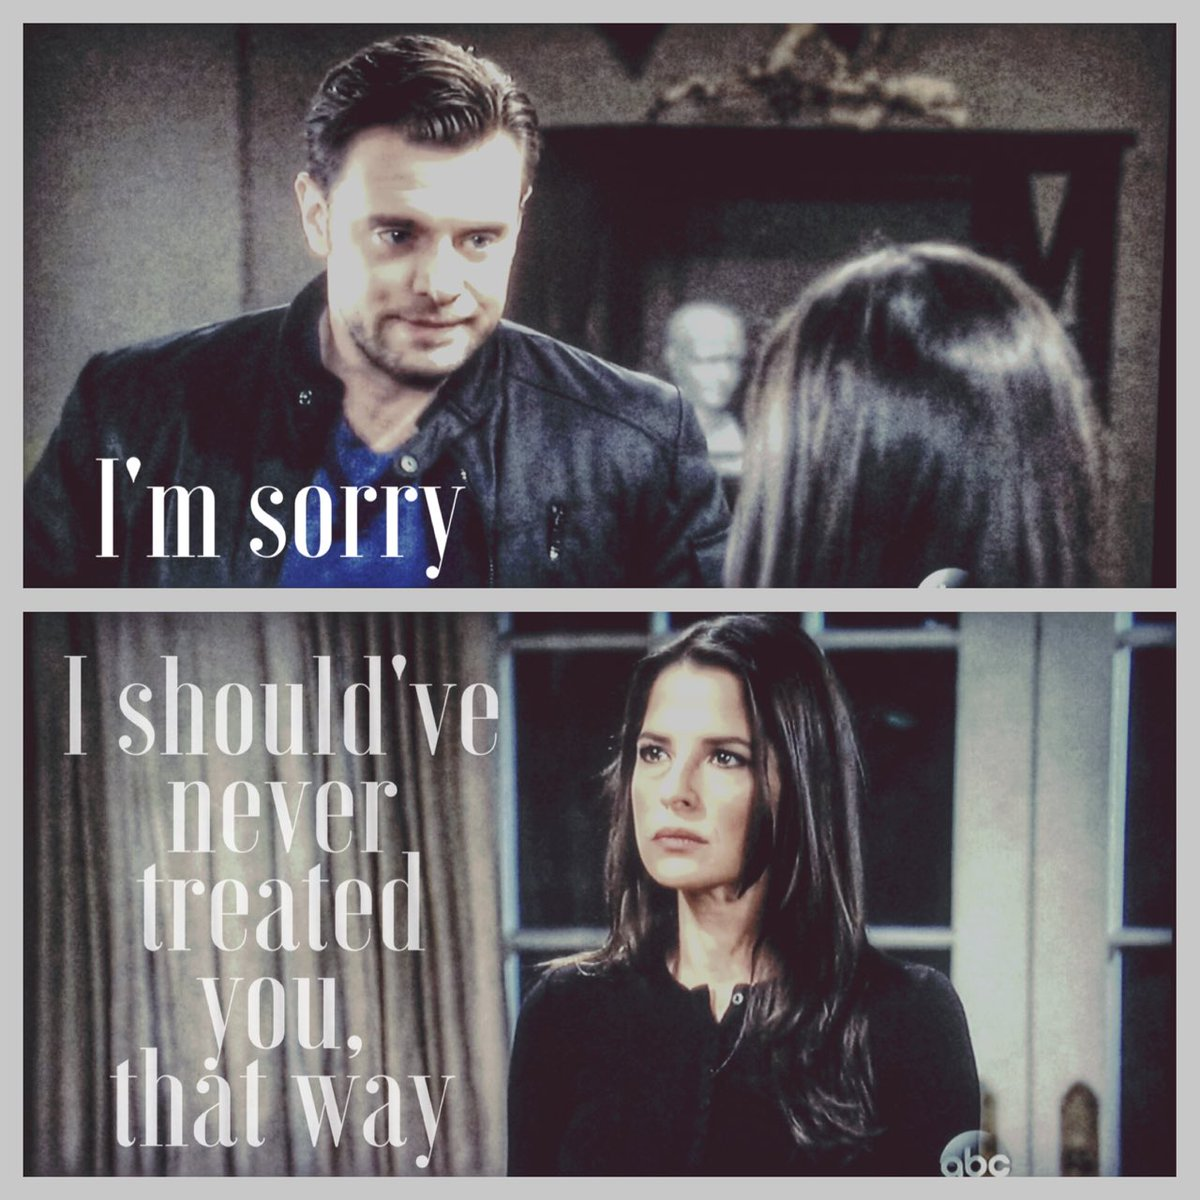 RT @Amy_Rebekah5: I'm with this man! #TeamDrew #SamFF #DreamGH #Samandrew https://t.co/dO2dT3ALGh